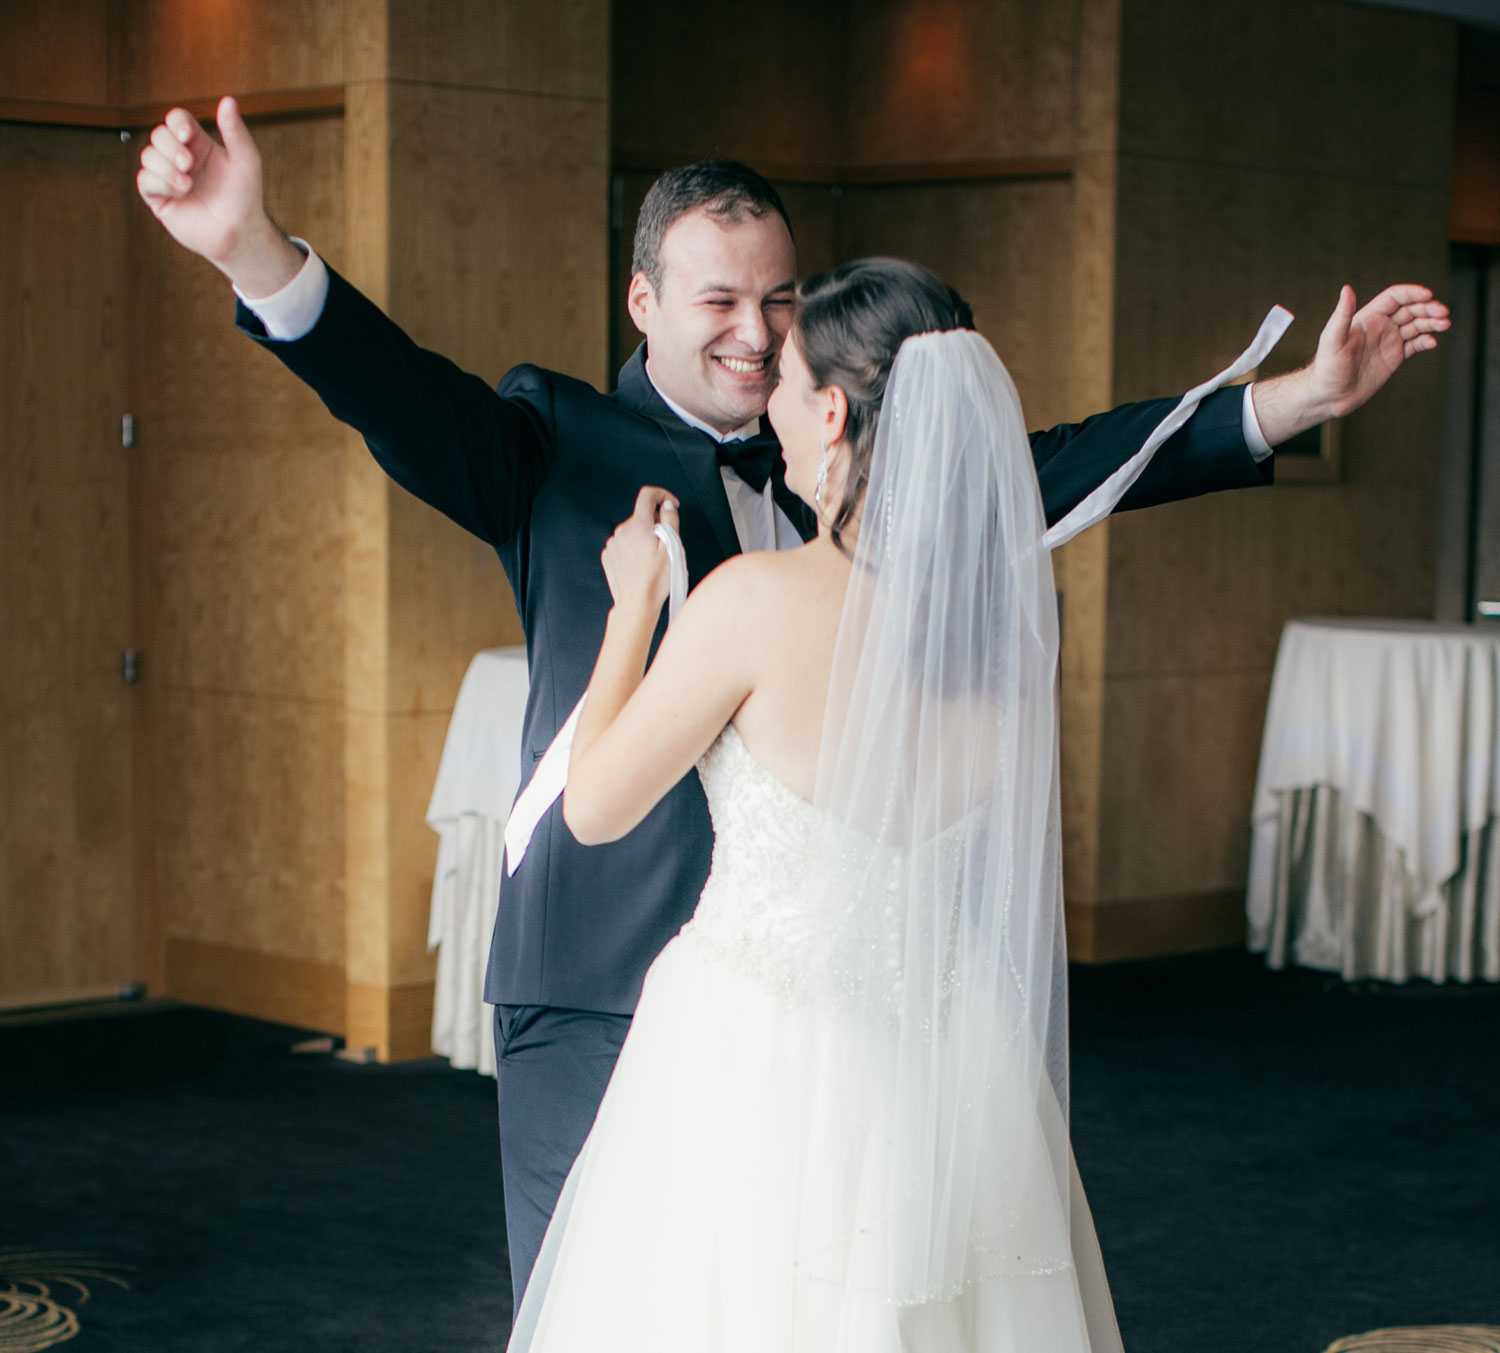 four-seasons-seattle-wedding-clane-gessel-photos-08